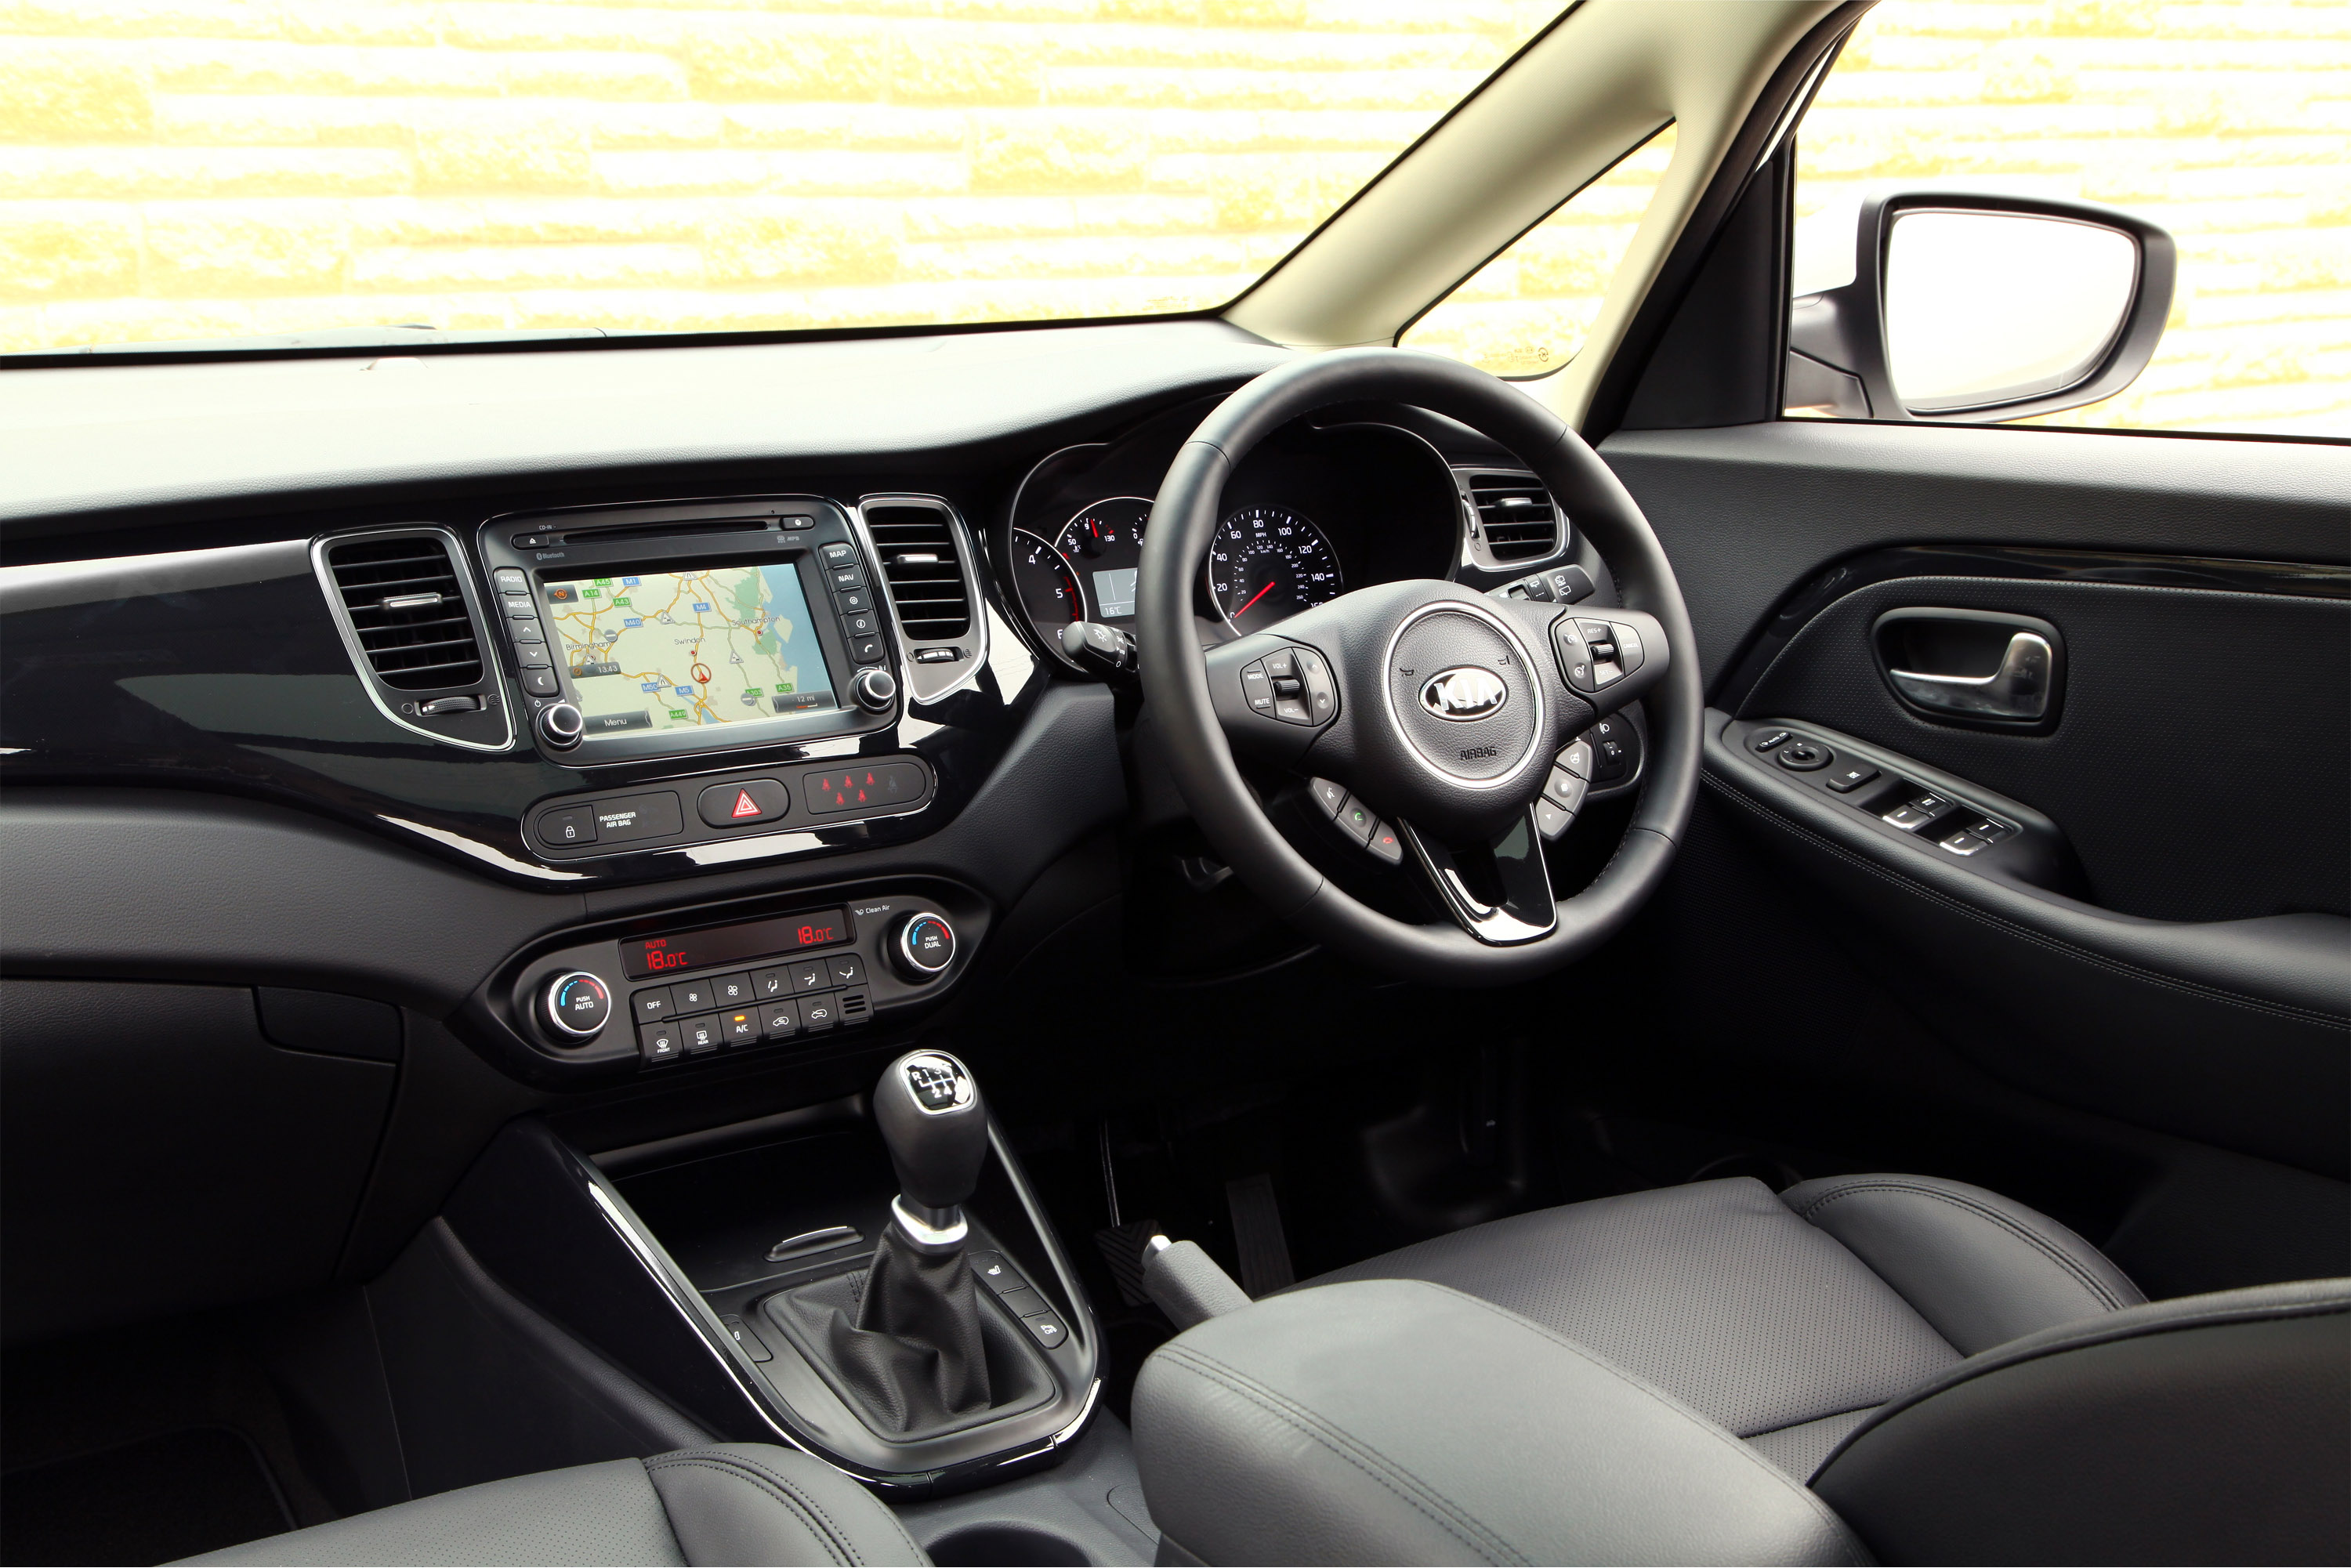 The 2014 Carens 3 Sat Nav is priced from £24,845 OTR.